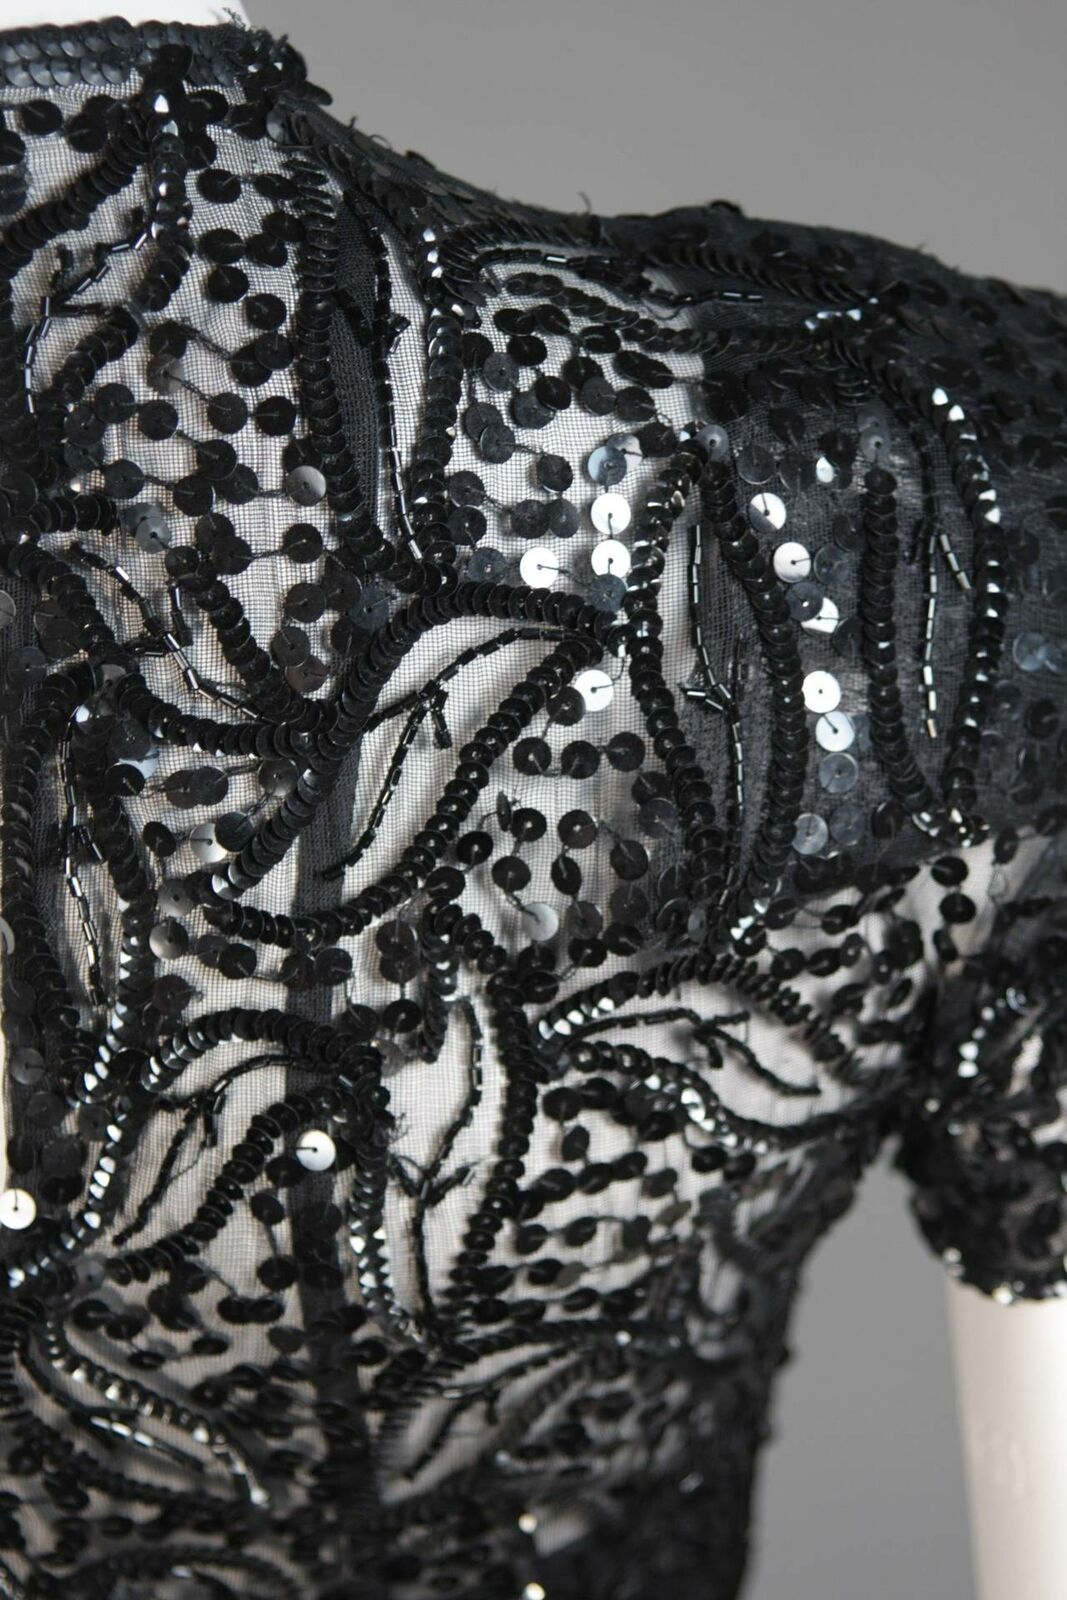 CEIL CHAPMAN Attributed Black Gown Size Small - image 10